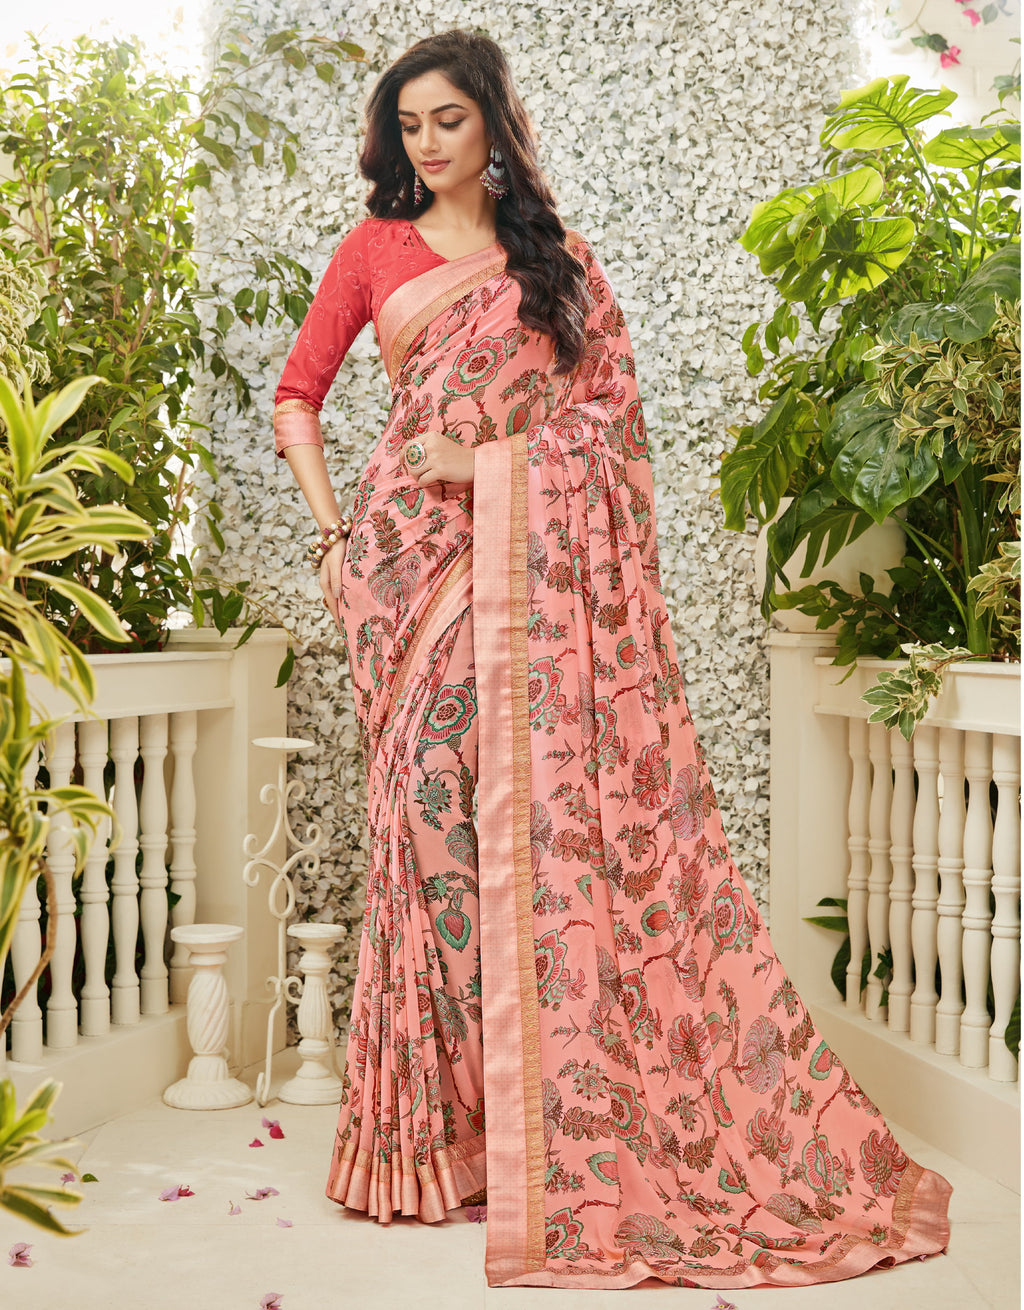 Pink Color Chiffon Kitty Party Sarees : Madhudhara Collection  NYF-2763 - YellowFashion.in